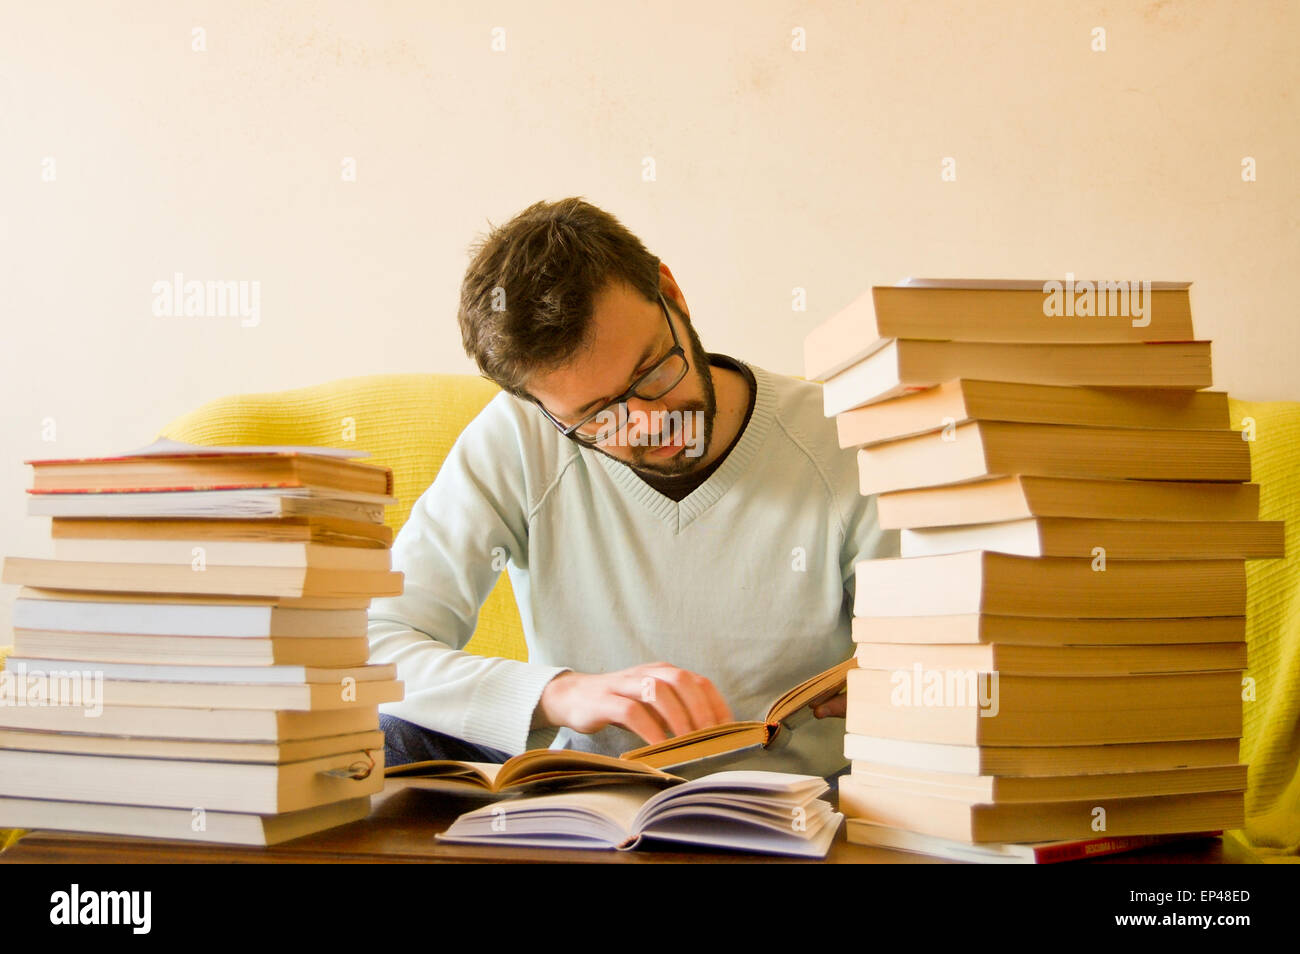 Man studying with a  pile of books in front of him - Stock Image